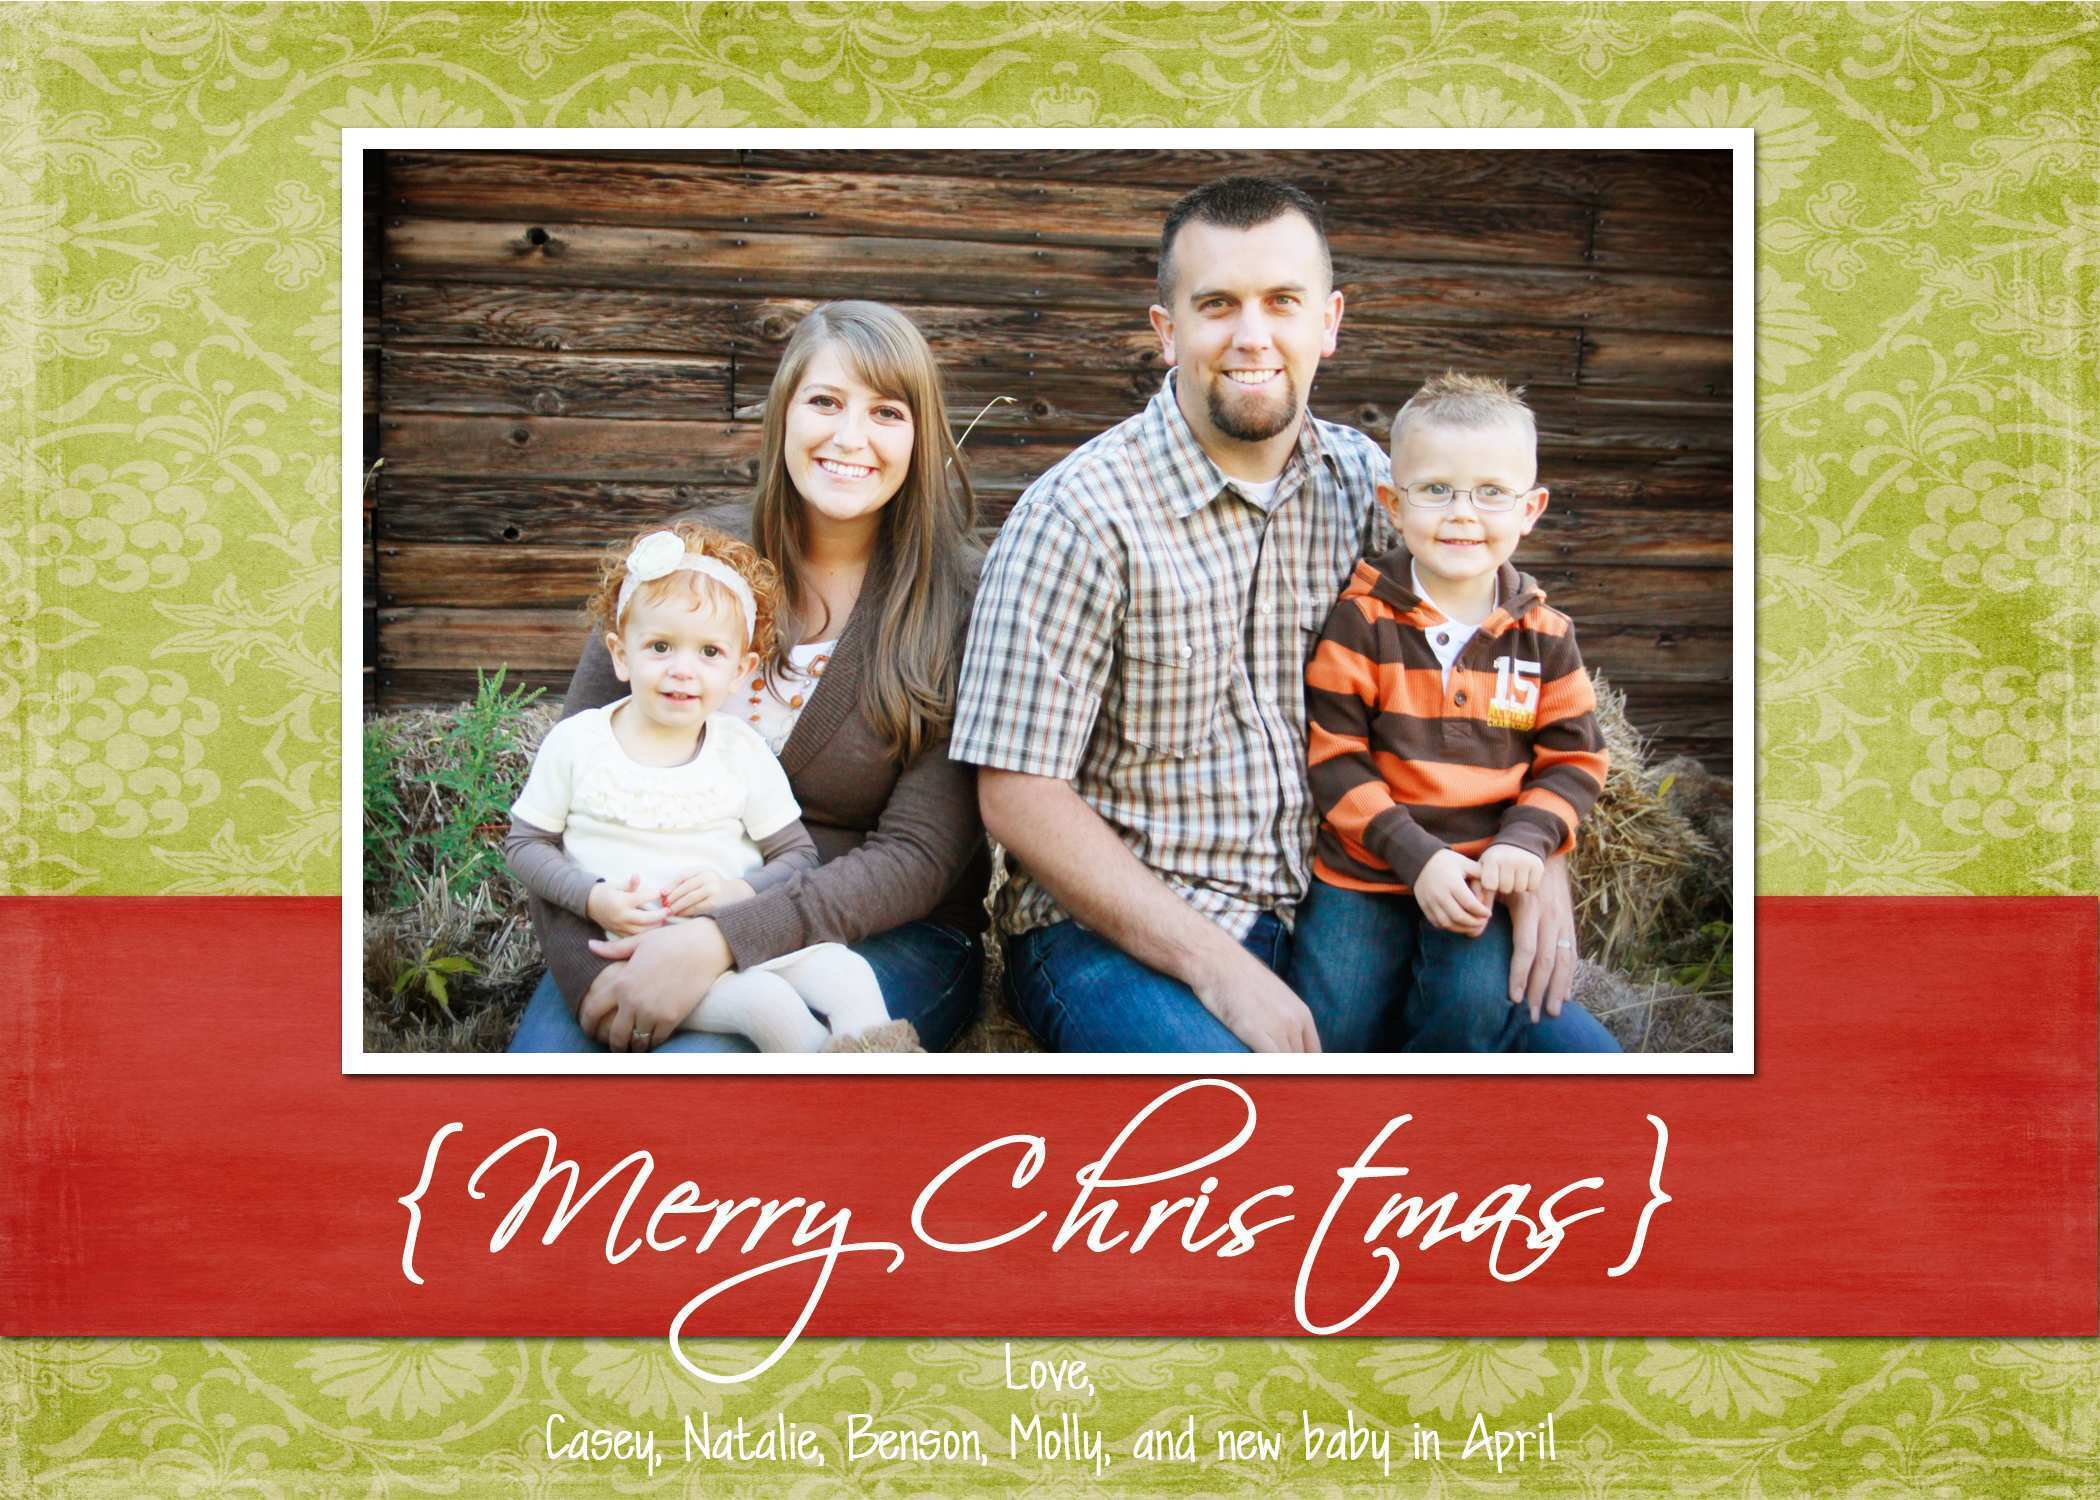 21 Visiting Christmas Card Templates For Free Download Photo for Christmas Card Templates For Free Download